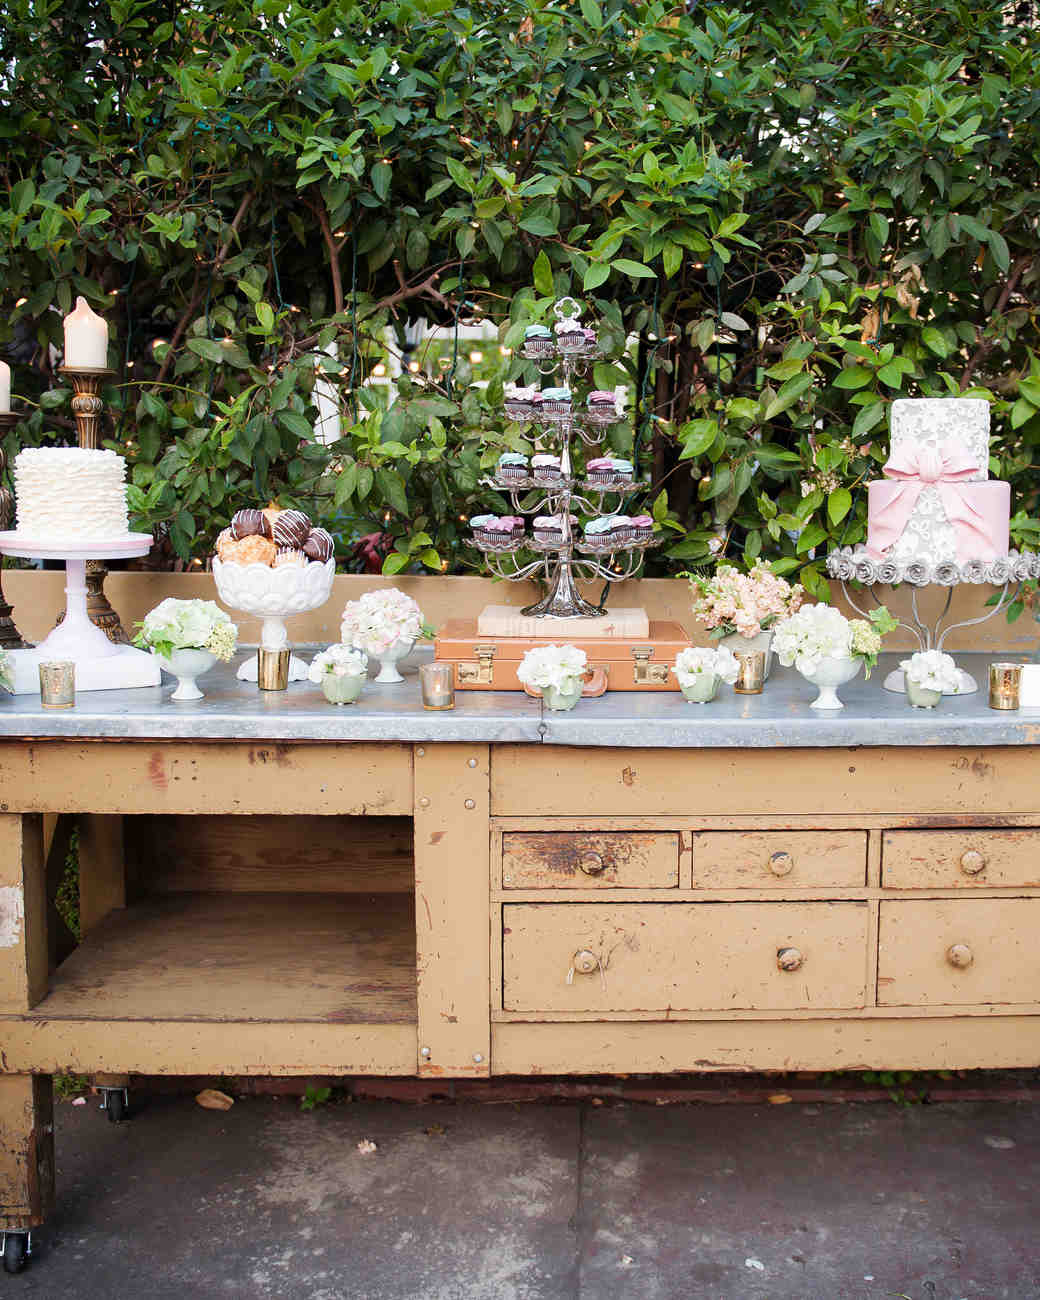 Flowers and Desserts on a Vintage Wooden Table